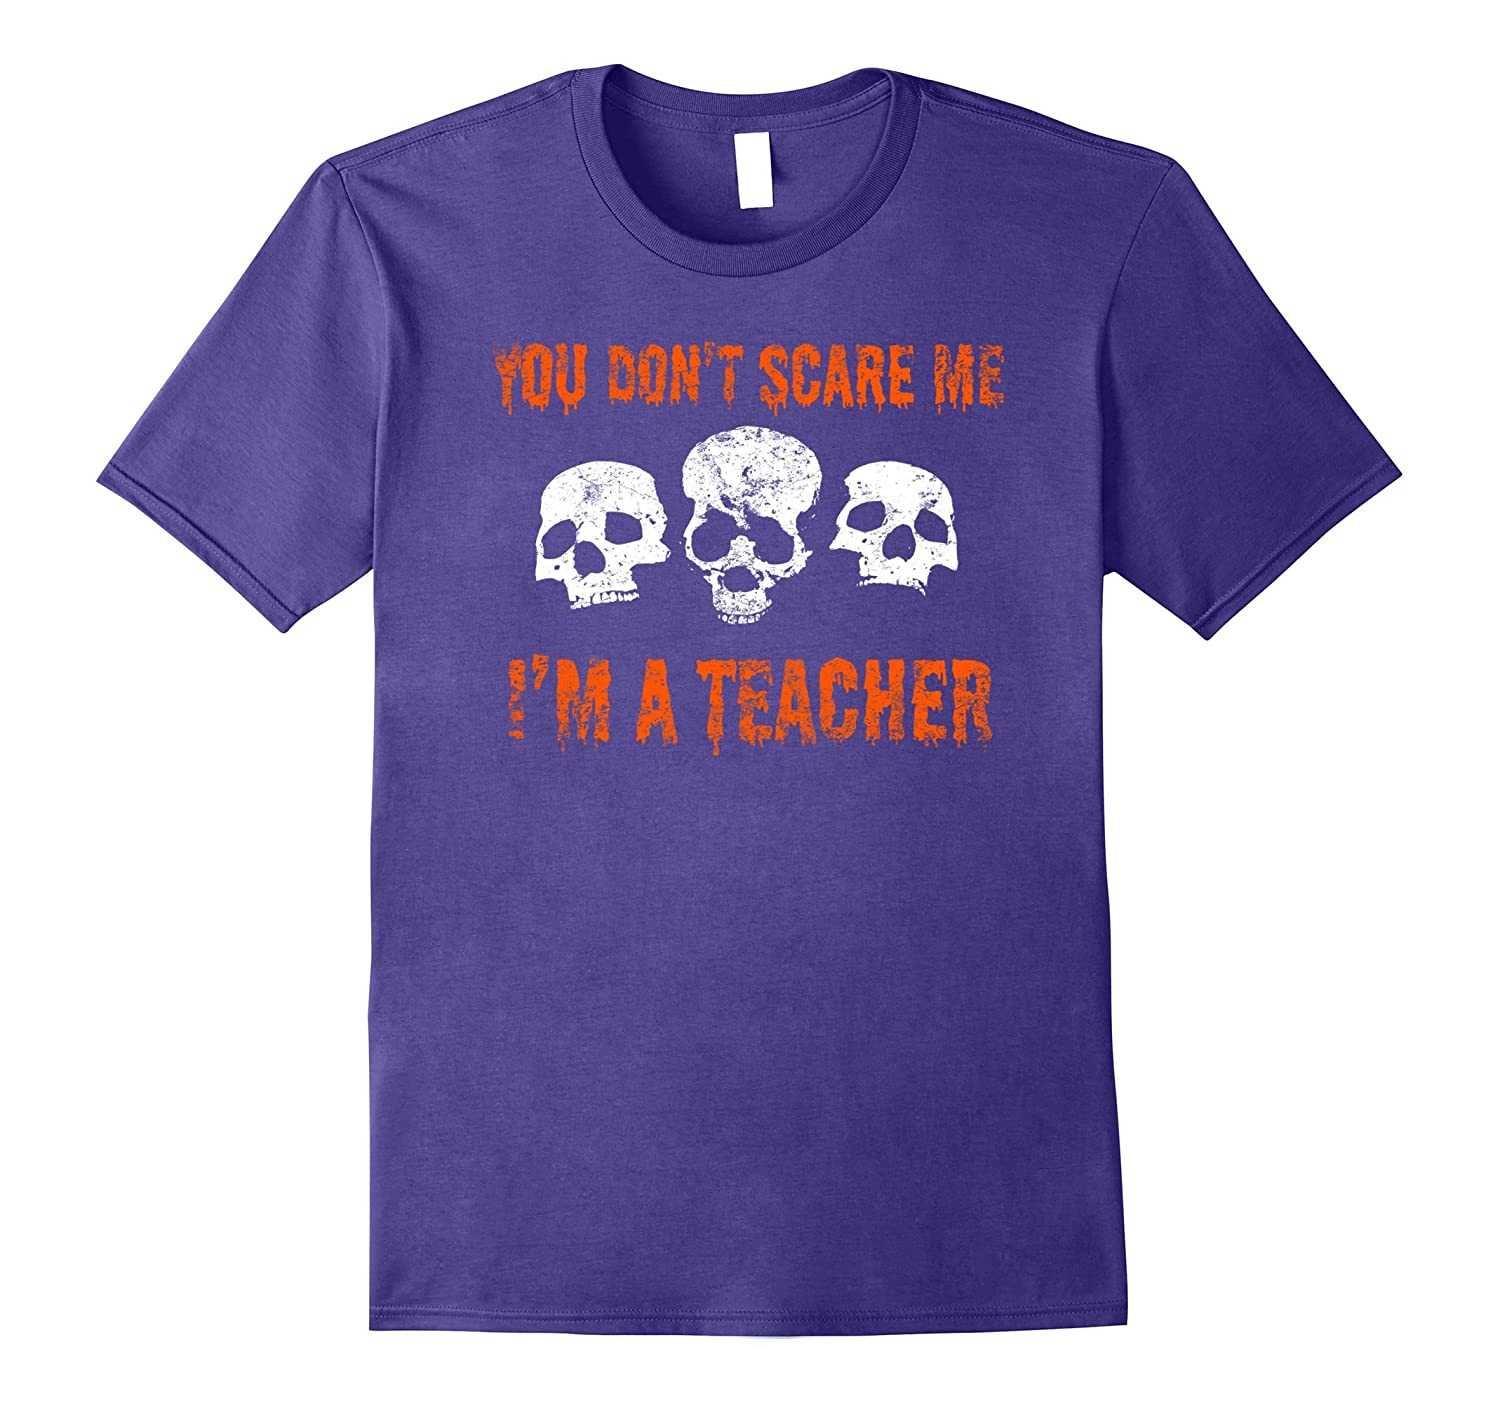 You Don't Scare me I'm A Teacher   Funny Halloween Tshirt-CL